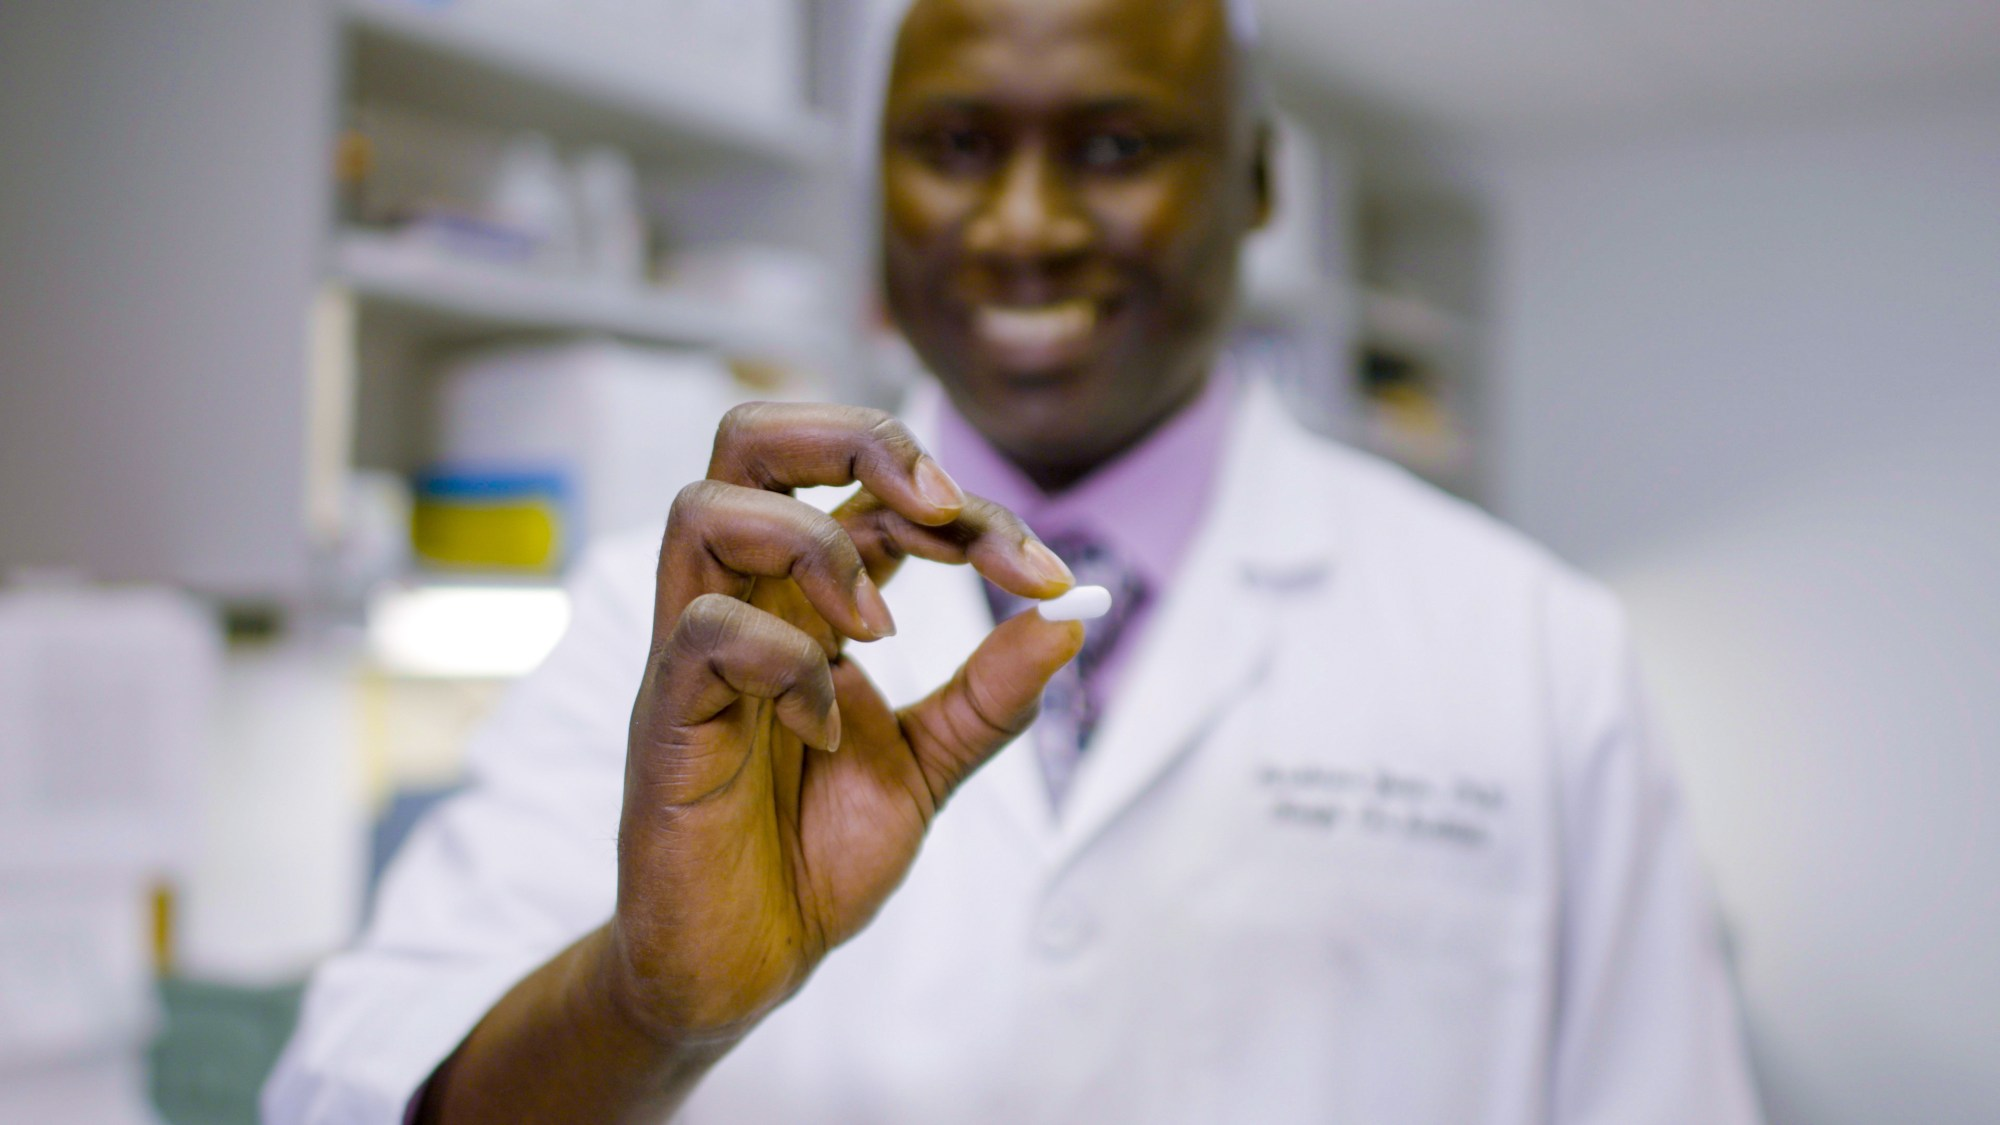 Ibrahima Youm, research scientist at HEI, holds the hearing loss pill